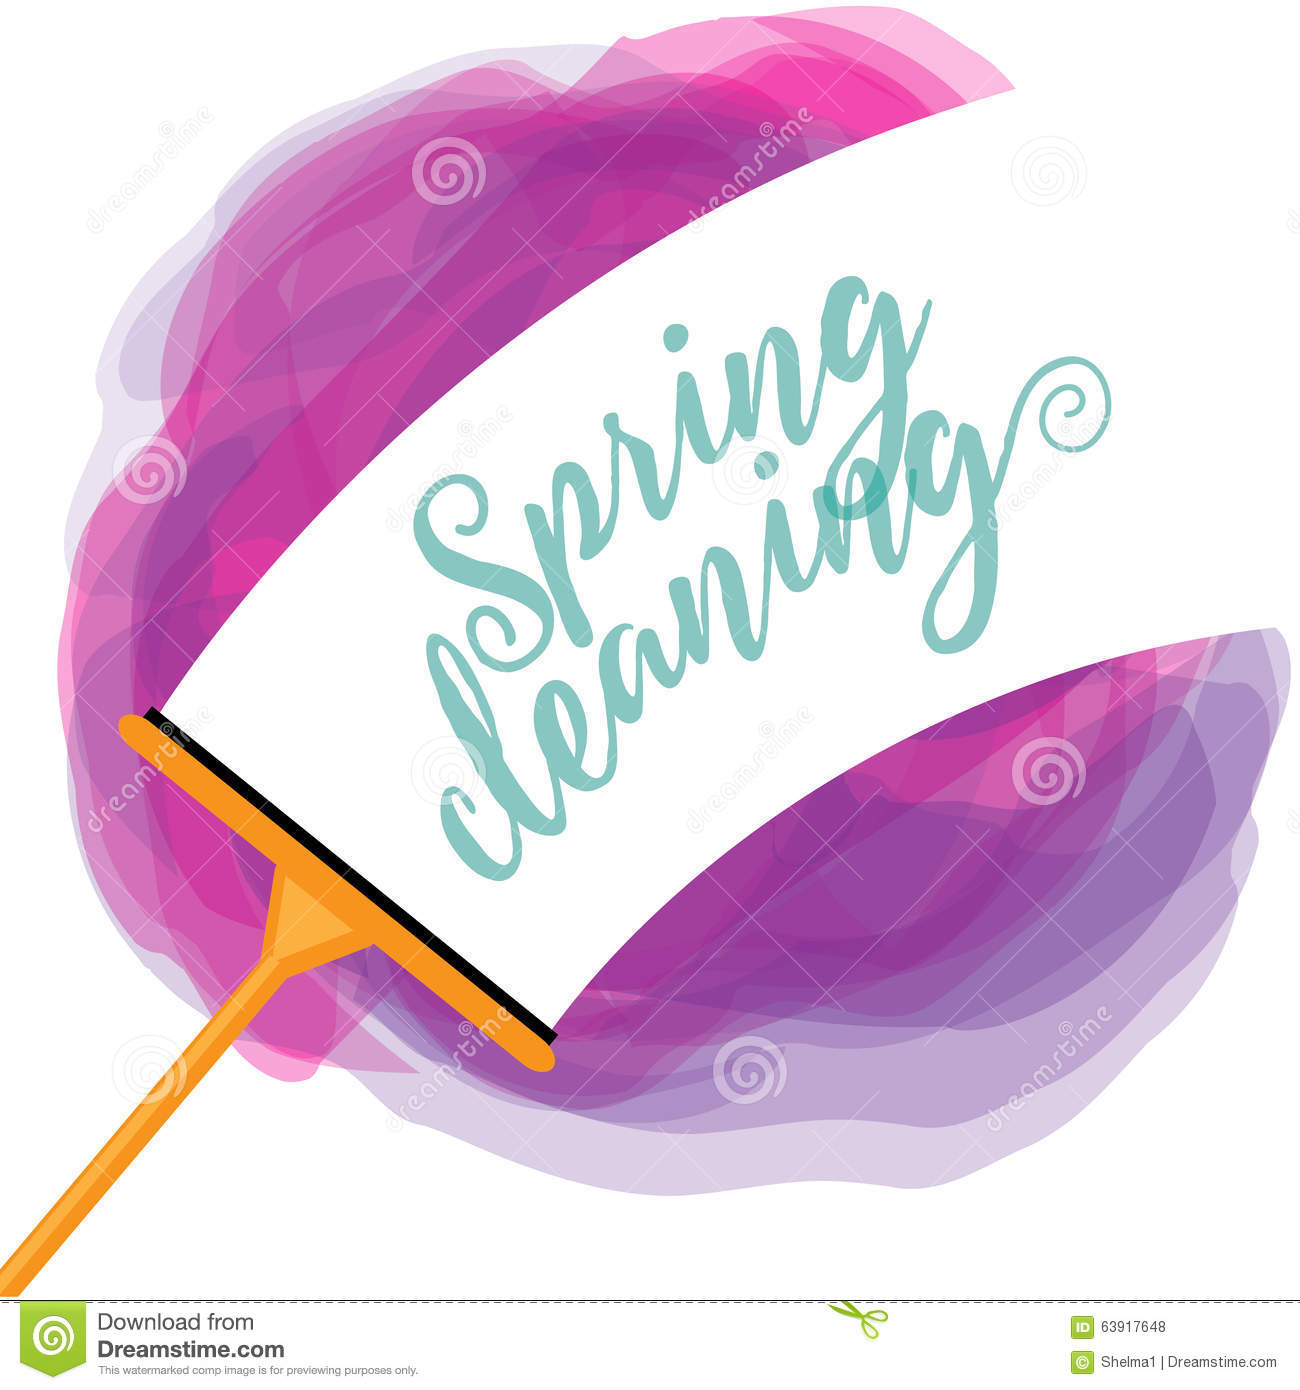 Spring Cleaning cheerful watercolor squeegee design